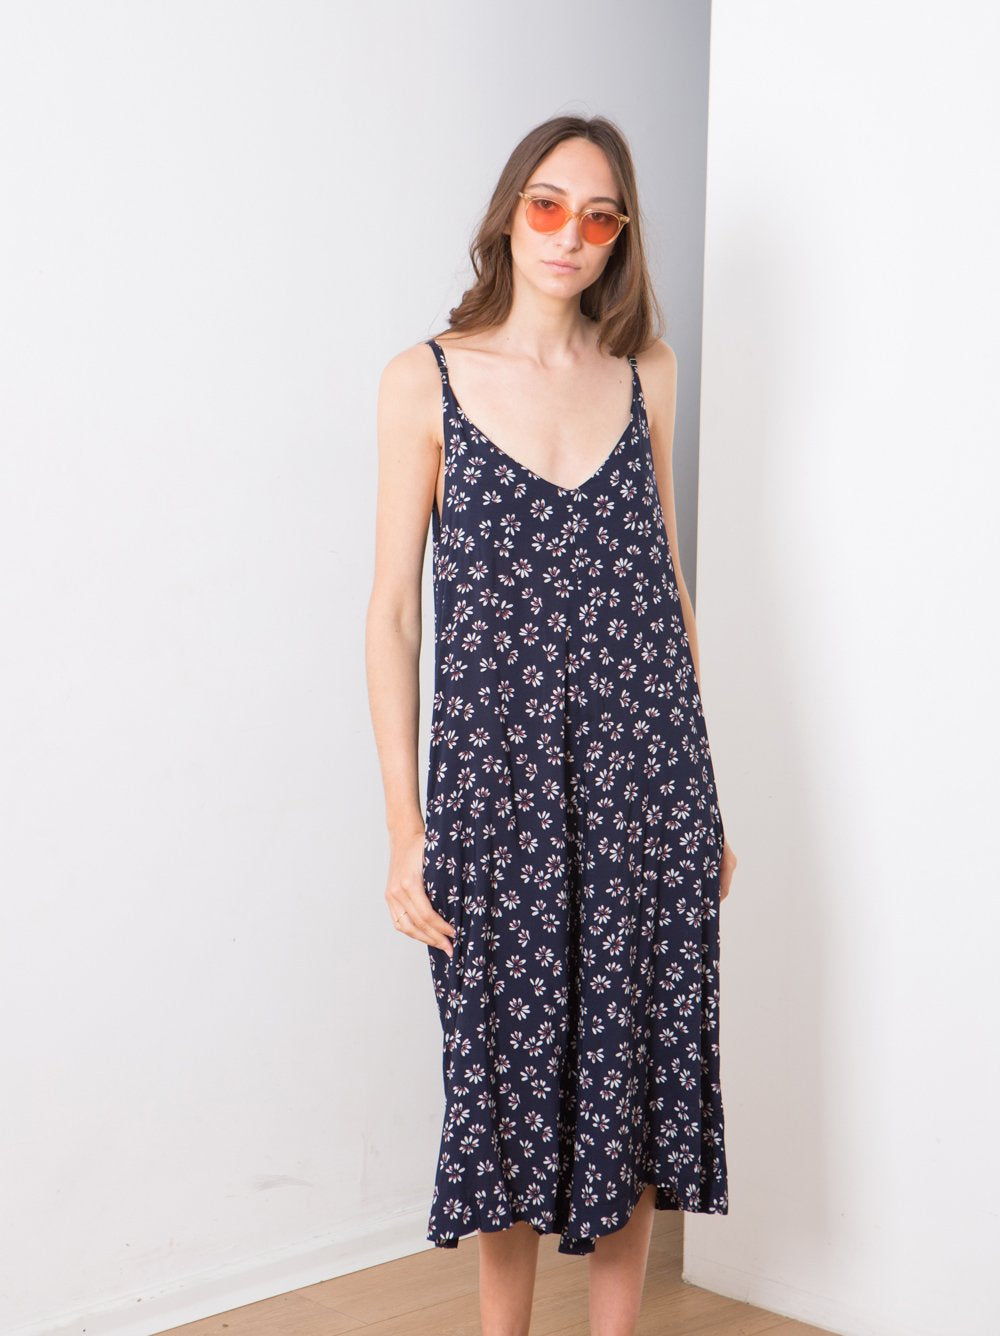 Summer wide leg Jumpsuits , Blue floral print jumpsuit  .